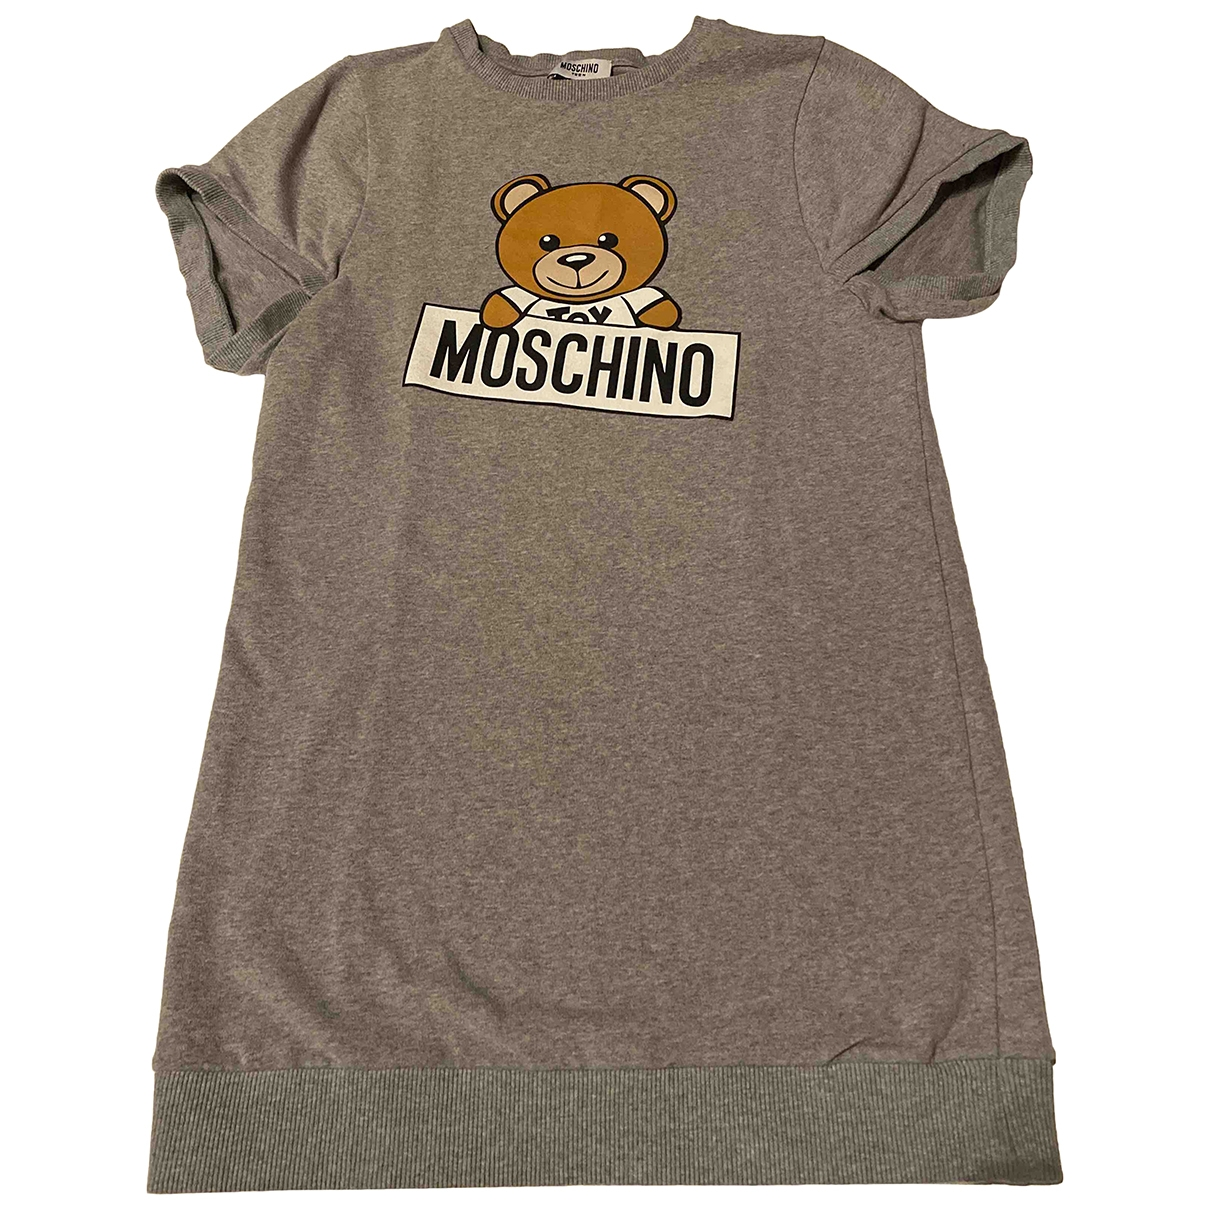 Jersey Moschino Cheap And Chic